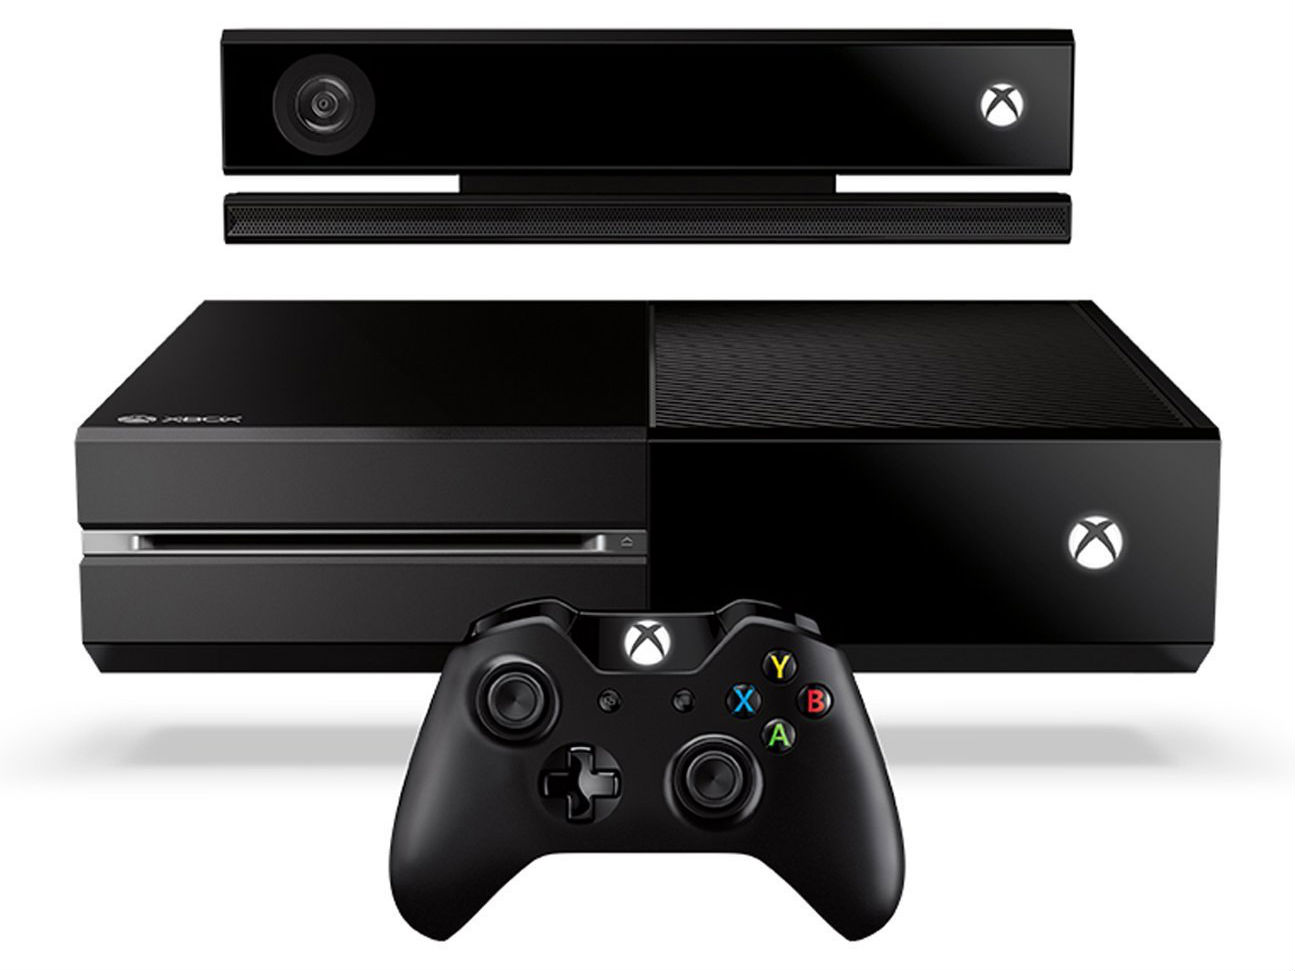 Best Buy has started accepting pre-orders for the Xbox One again.